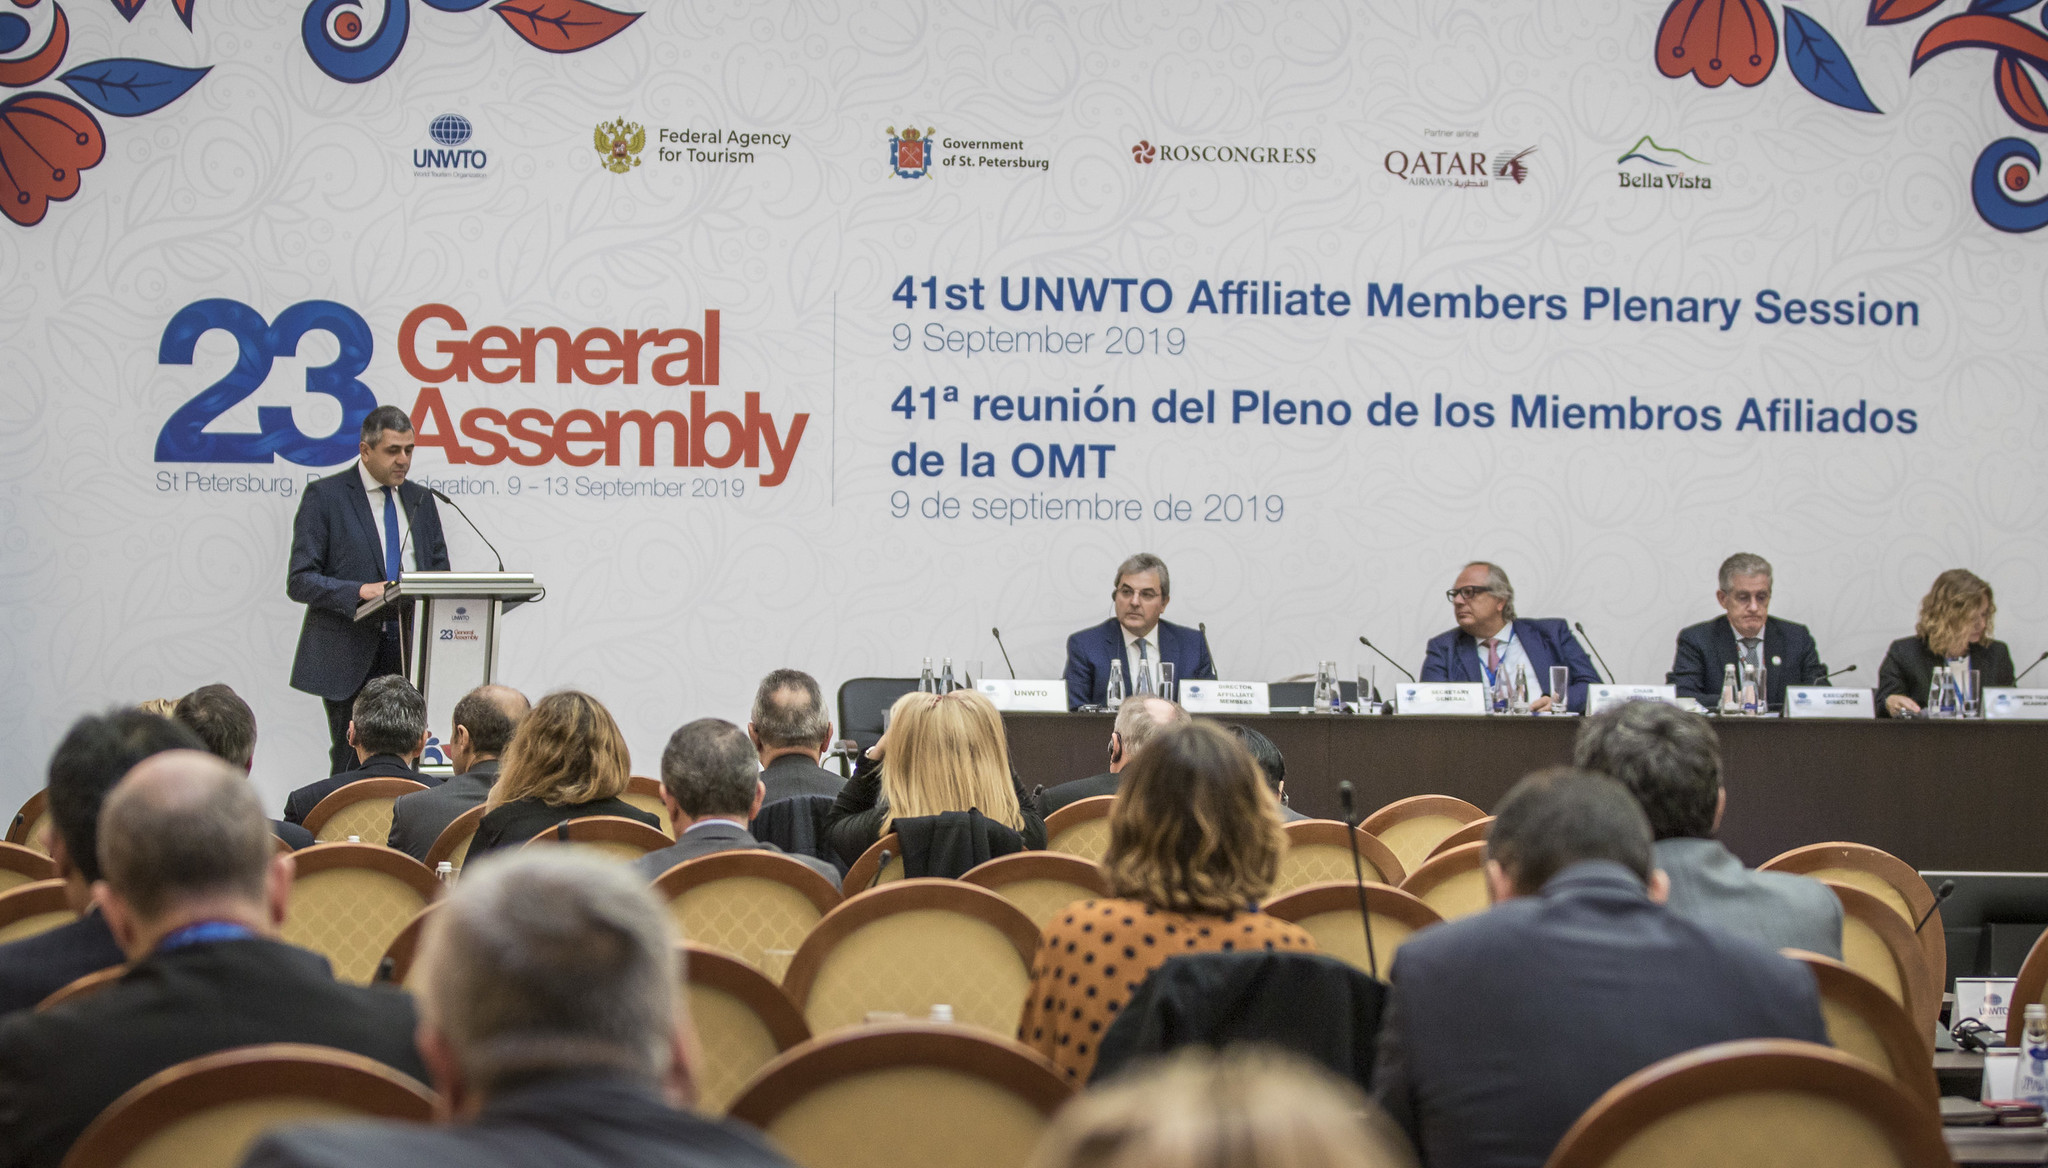 #UNWTOGA: Day one highlights at 23rd UNWTO General Assembly